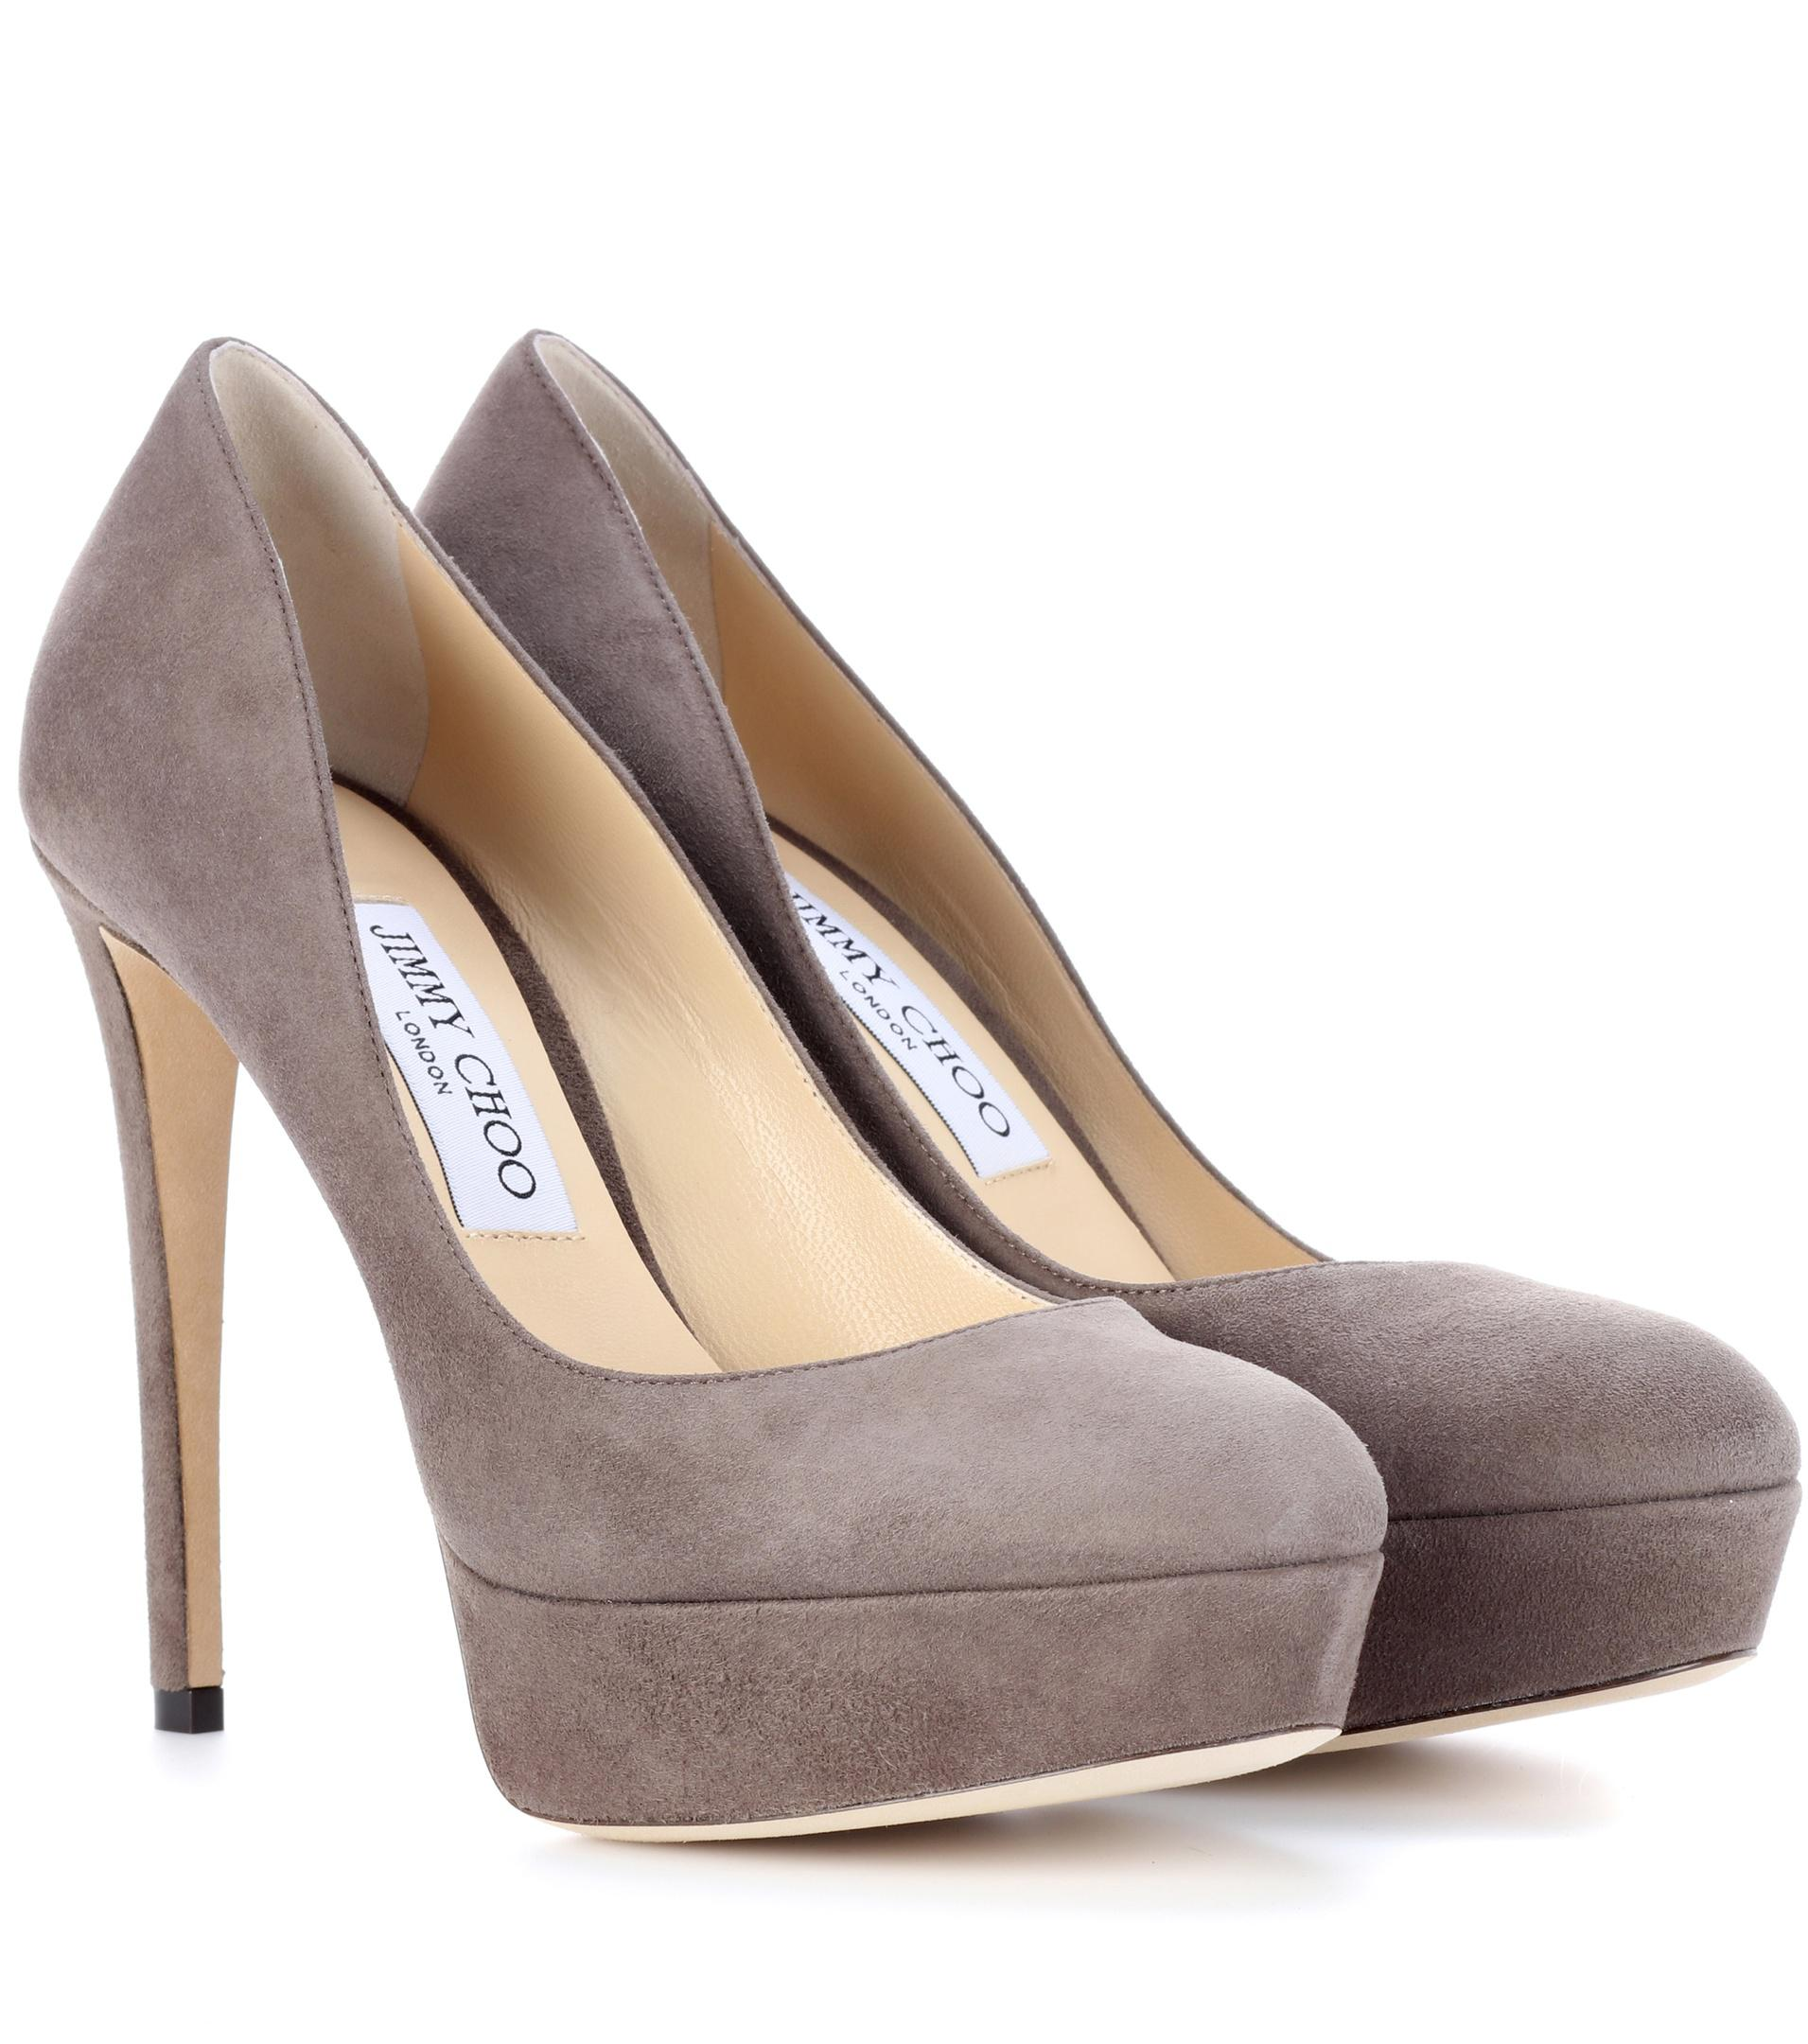 Ellis 120 suede platform pumps Jimmy Choo London Outlet Latest Buy Cheap Really Cut-Price Prices For Sale ju14Ht